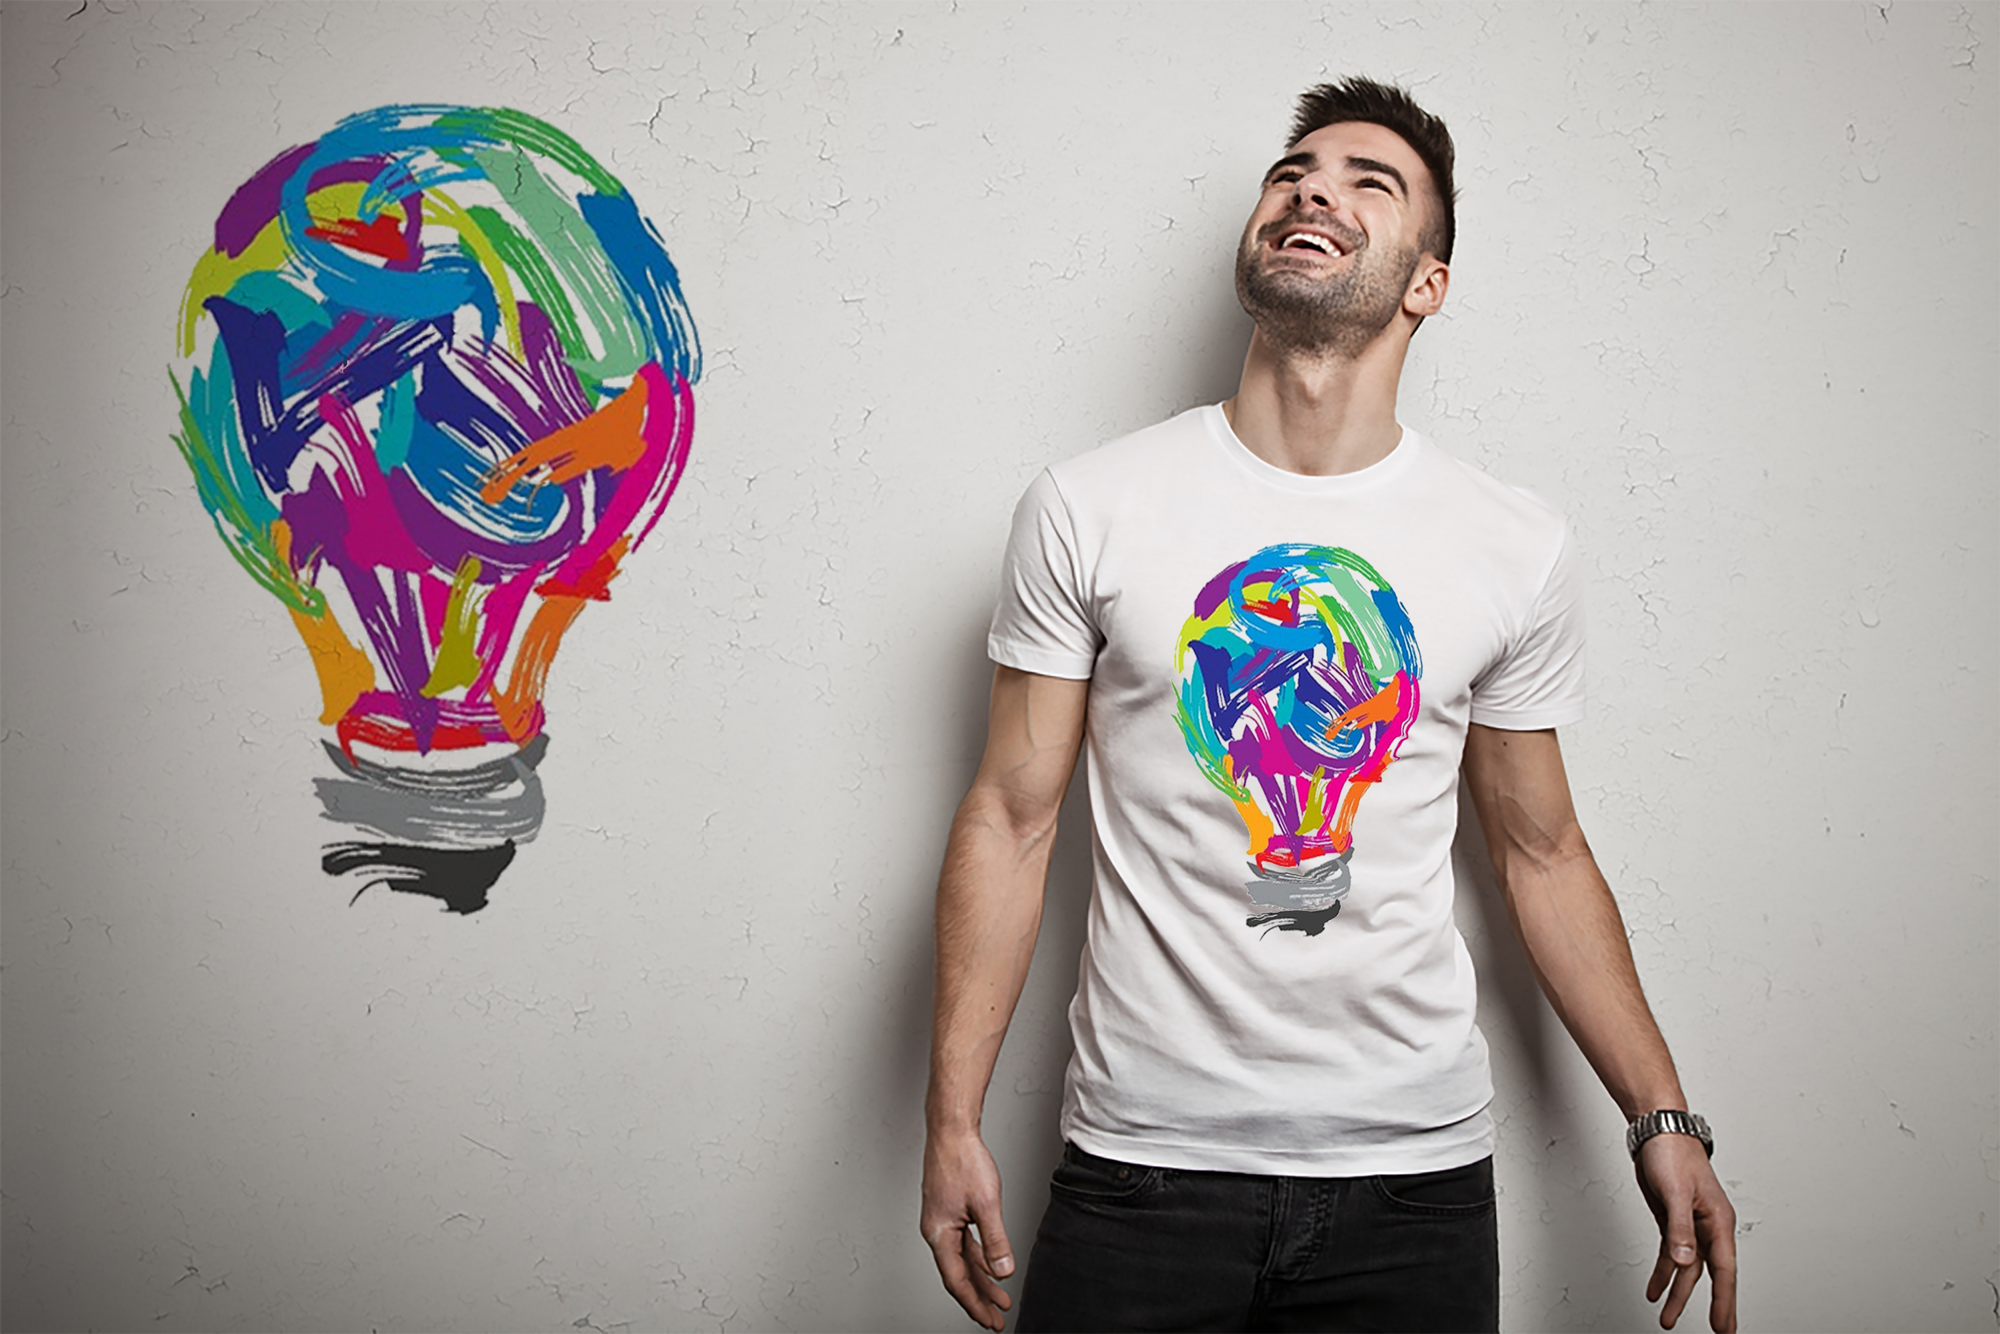 I will design your t shirt according your design